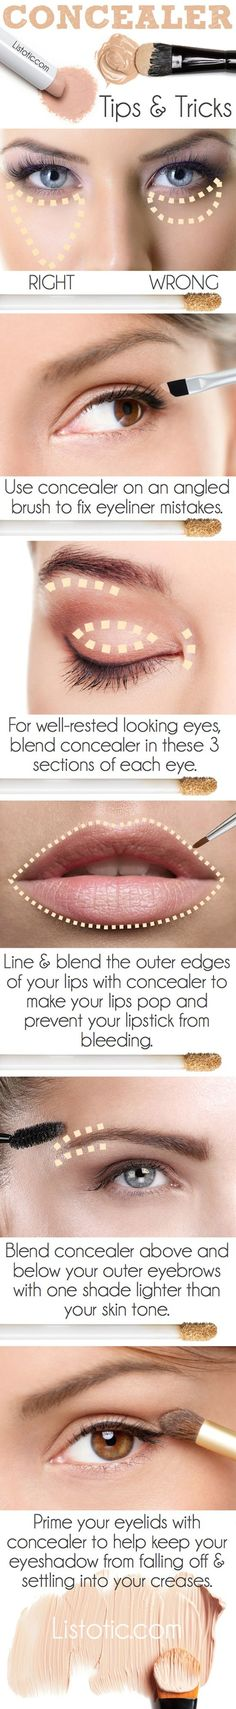 The Right Way To Use Your Concealer